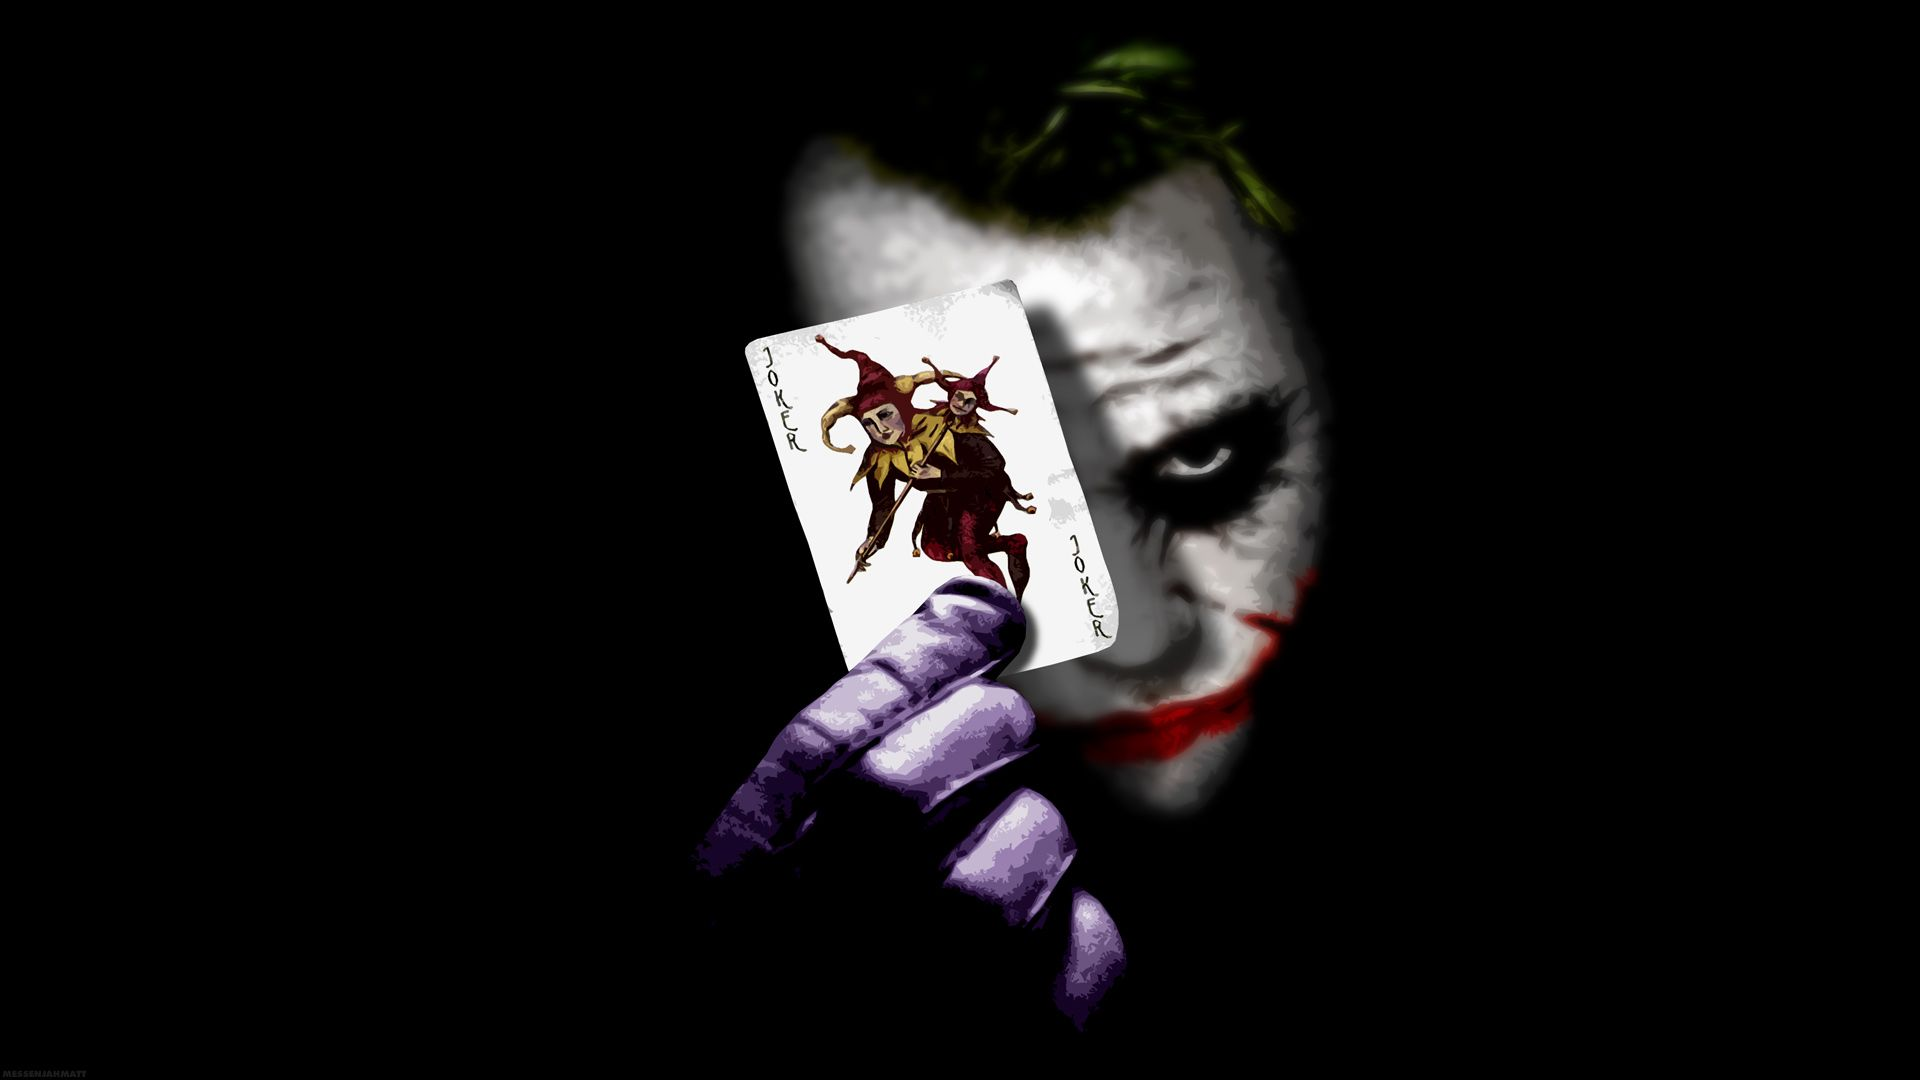 HD Joker Hd Wallpapers 1080p With Windows Wallpaper Full Download